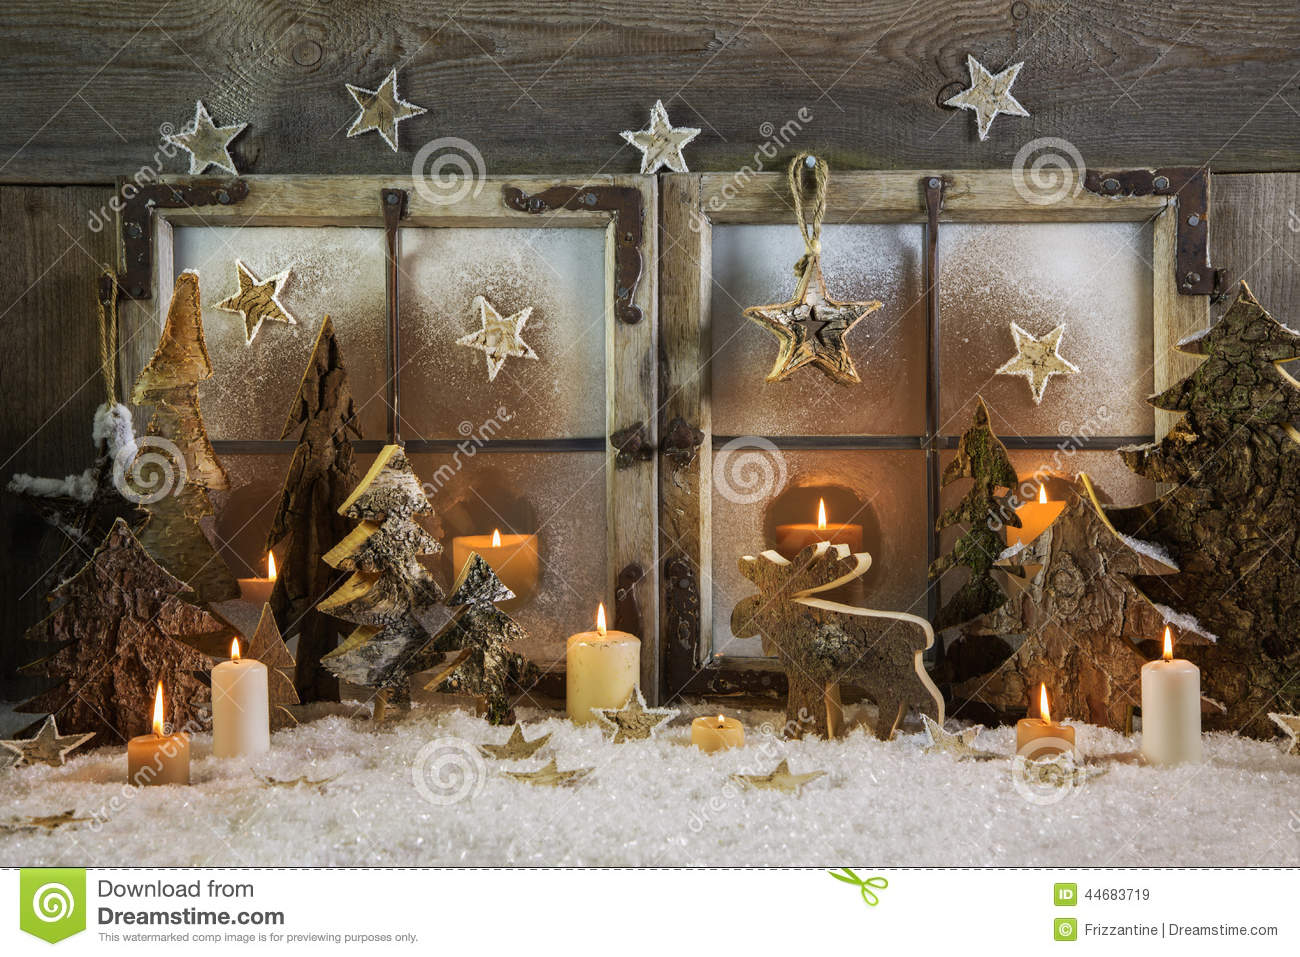 Natural Handmade Christmas Decoration Of Wood Outdoor In The Win.